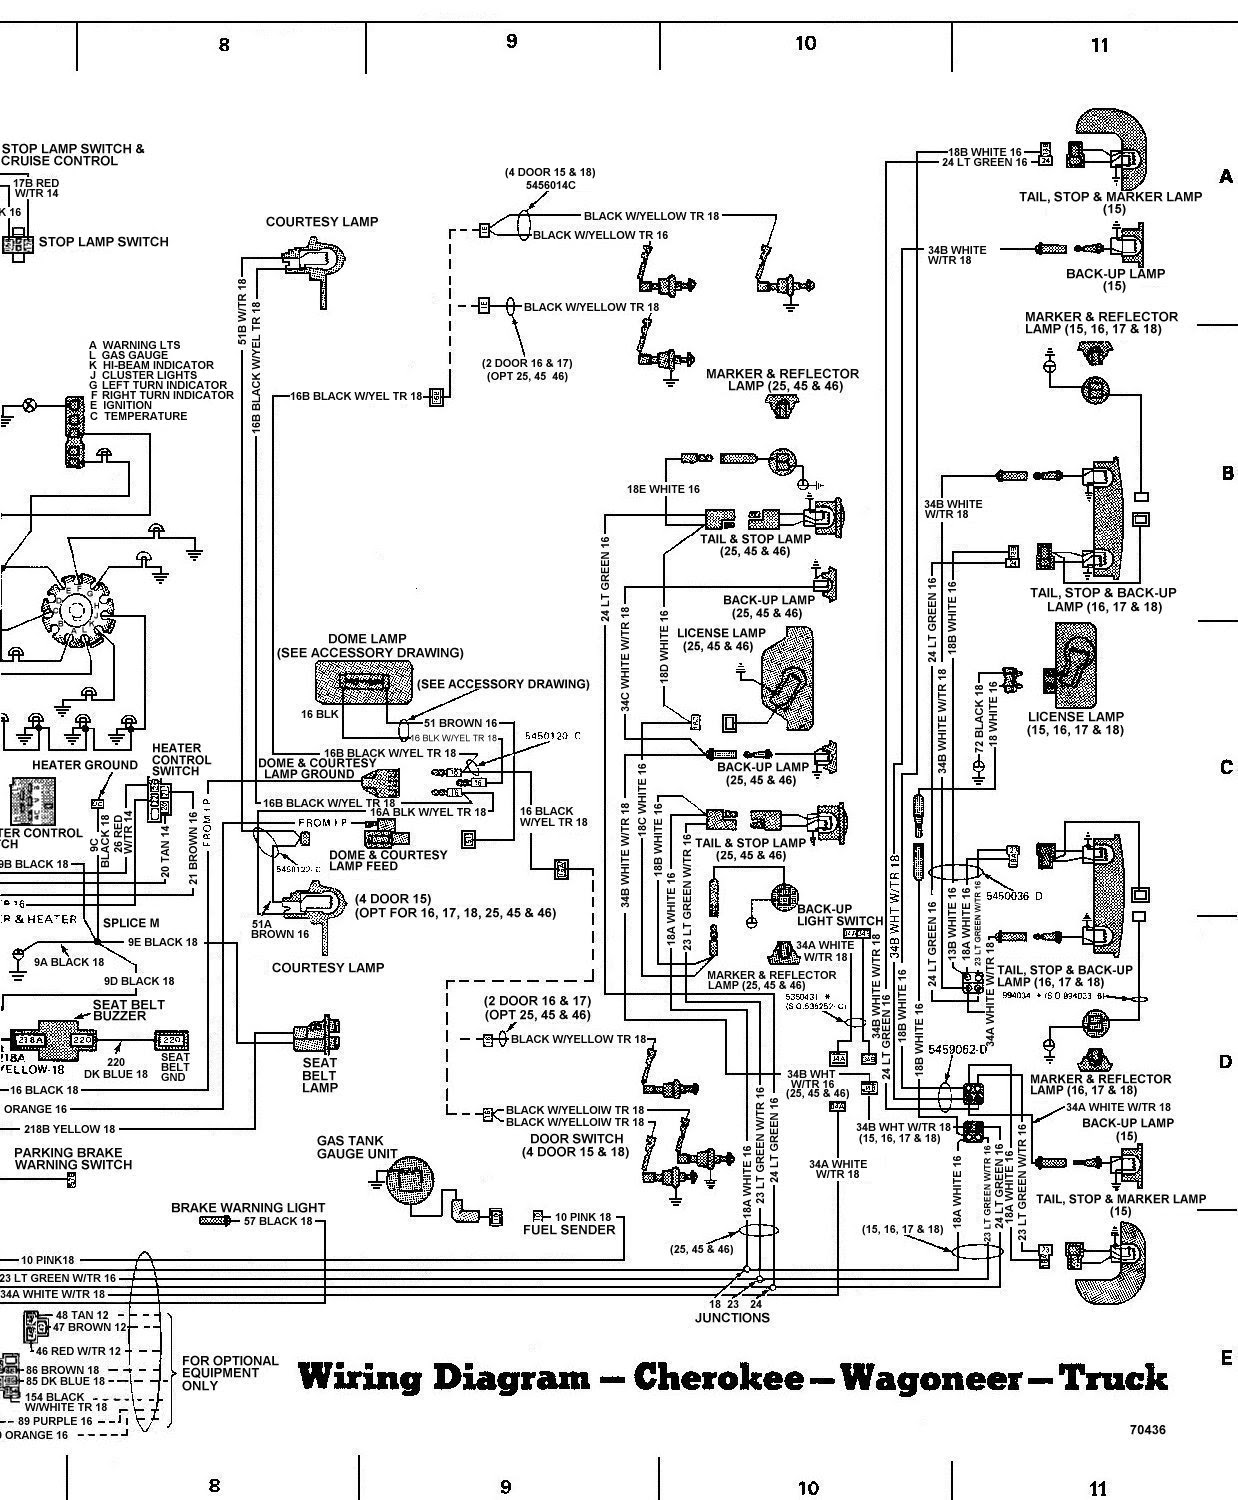 Diagram 1995 Jeep Grand Cherokee Door Wiring Diagram Full Version Hd Quality Wiring Diagram Diagramwiki Iforyouitalia It